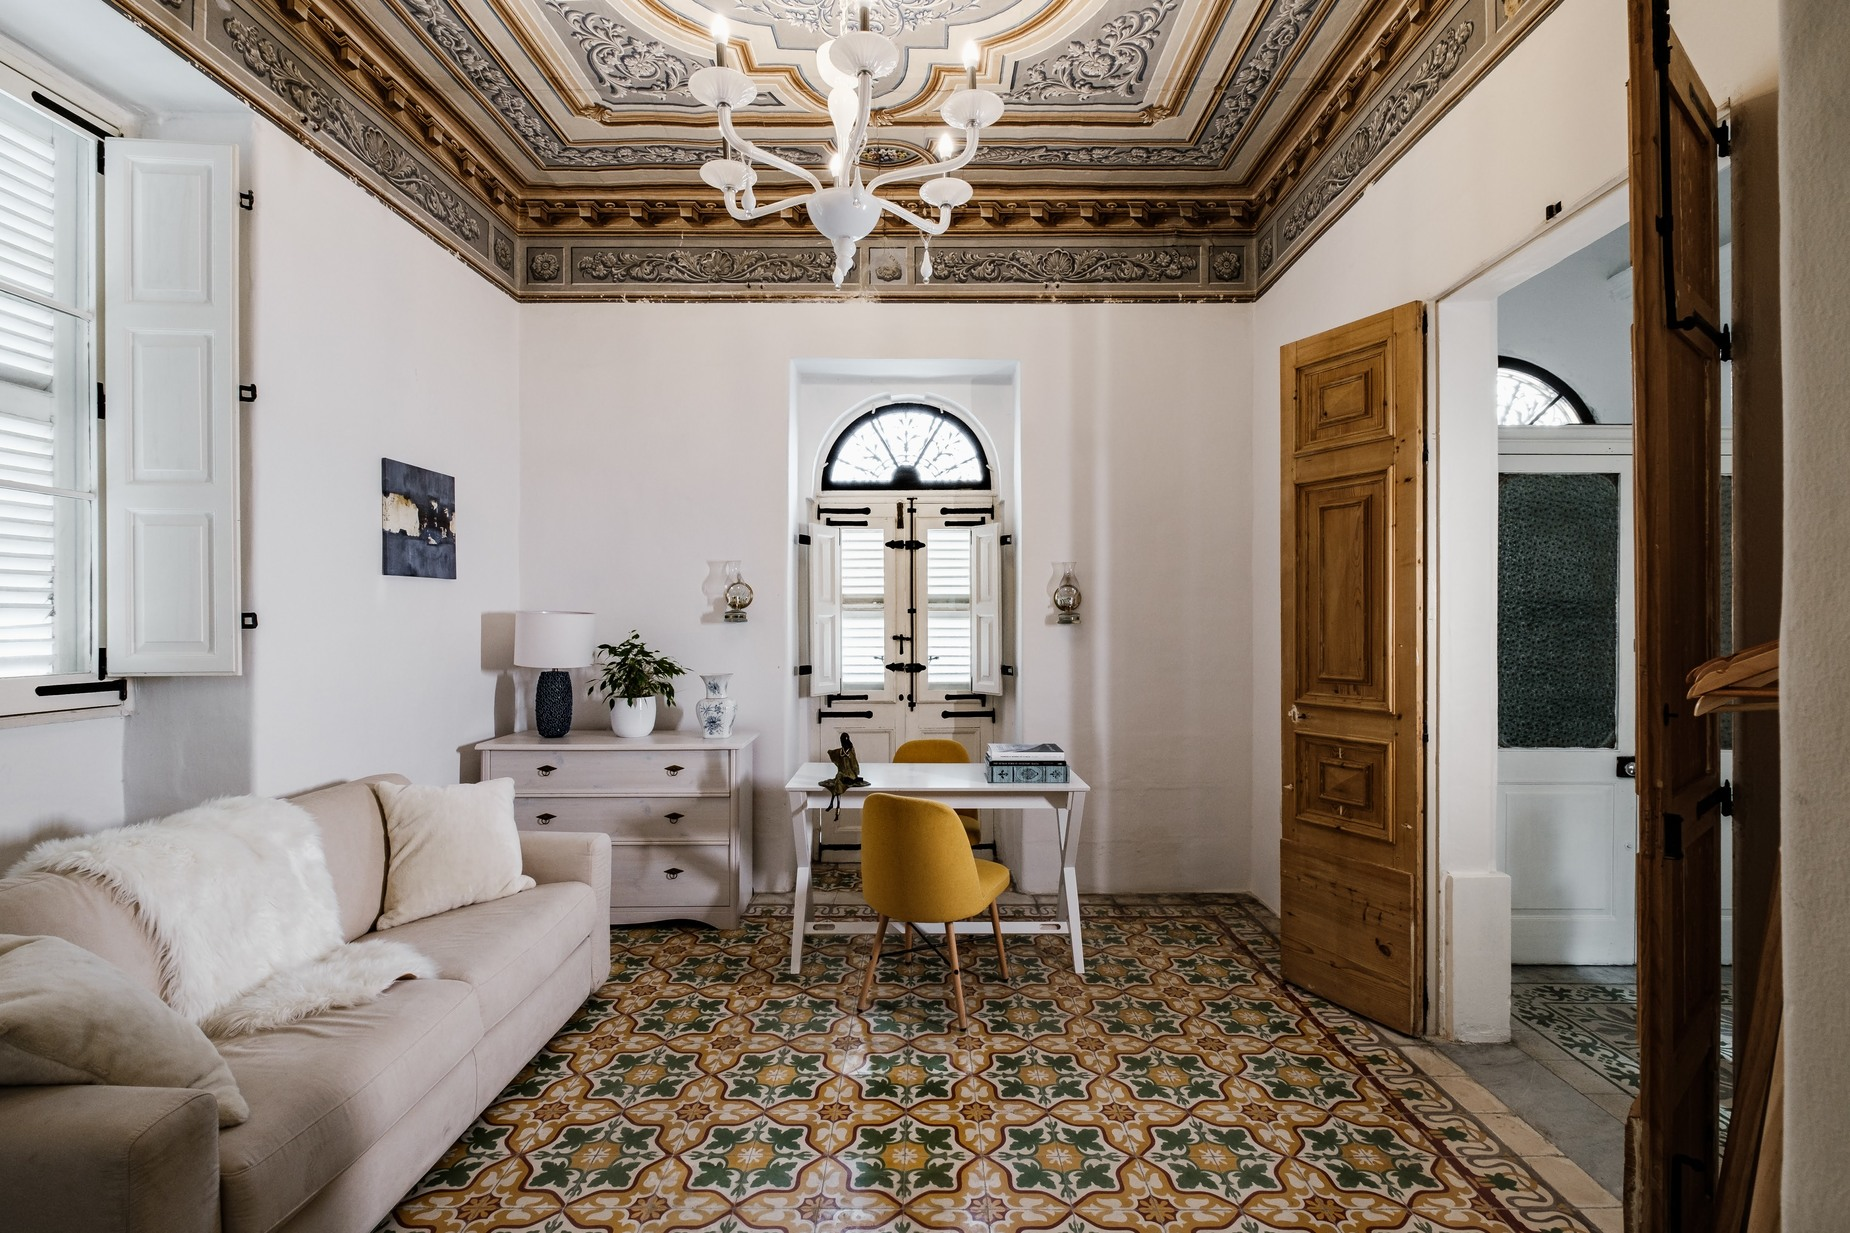 3 bed Town House For Sale in Birkirkara,  - thumb 4